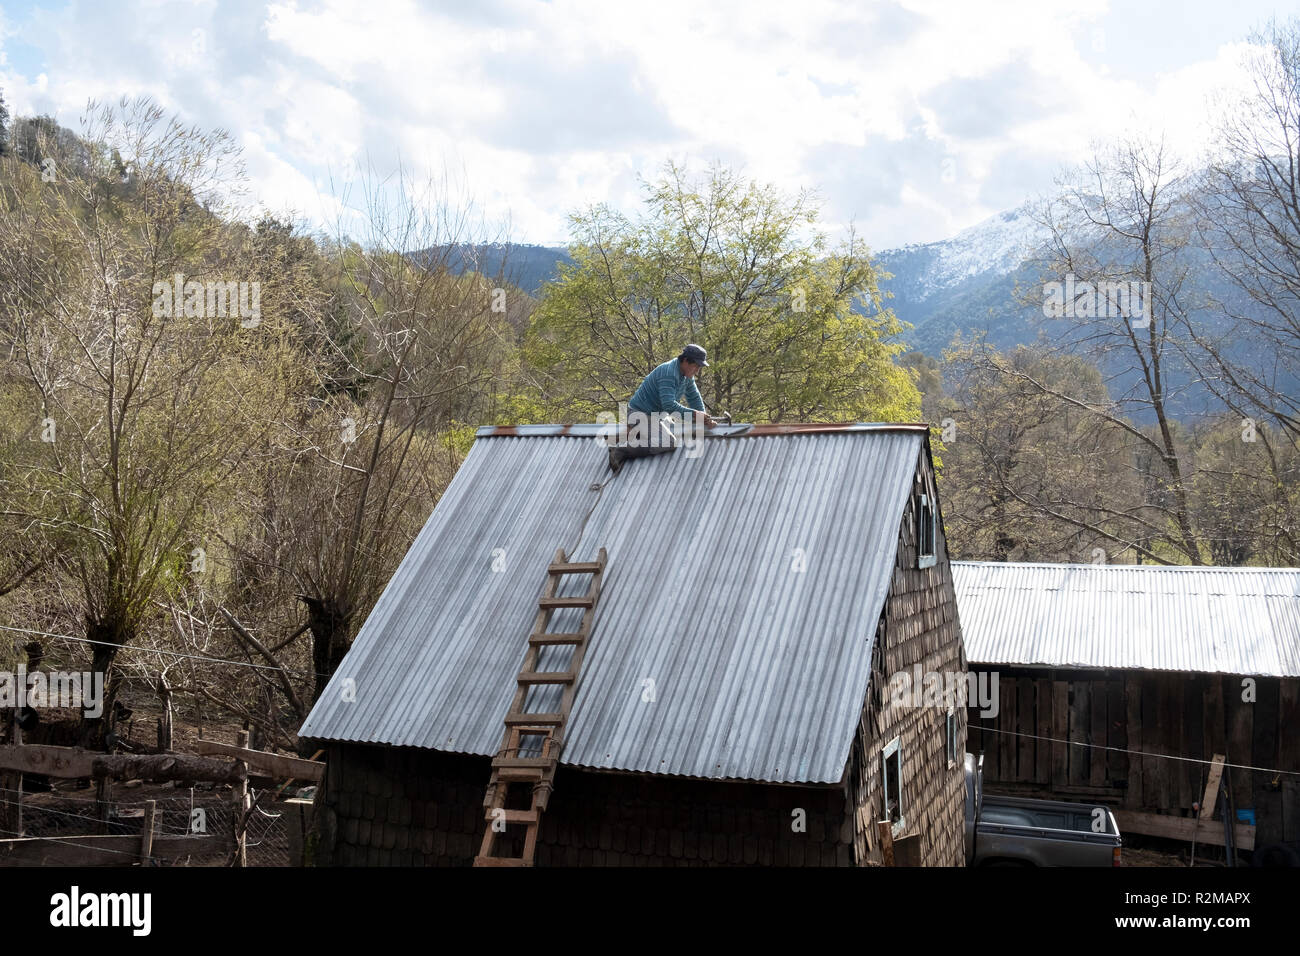 A member of the Mapuche tribal people, repairs the roof of his barn in Reigolil, Chile Stock Photo